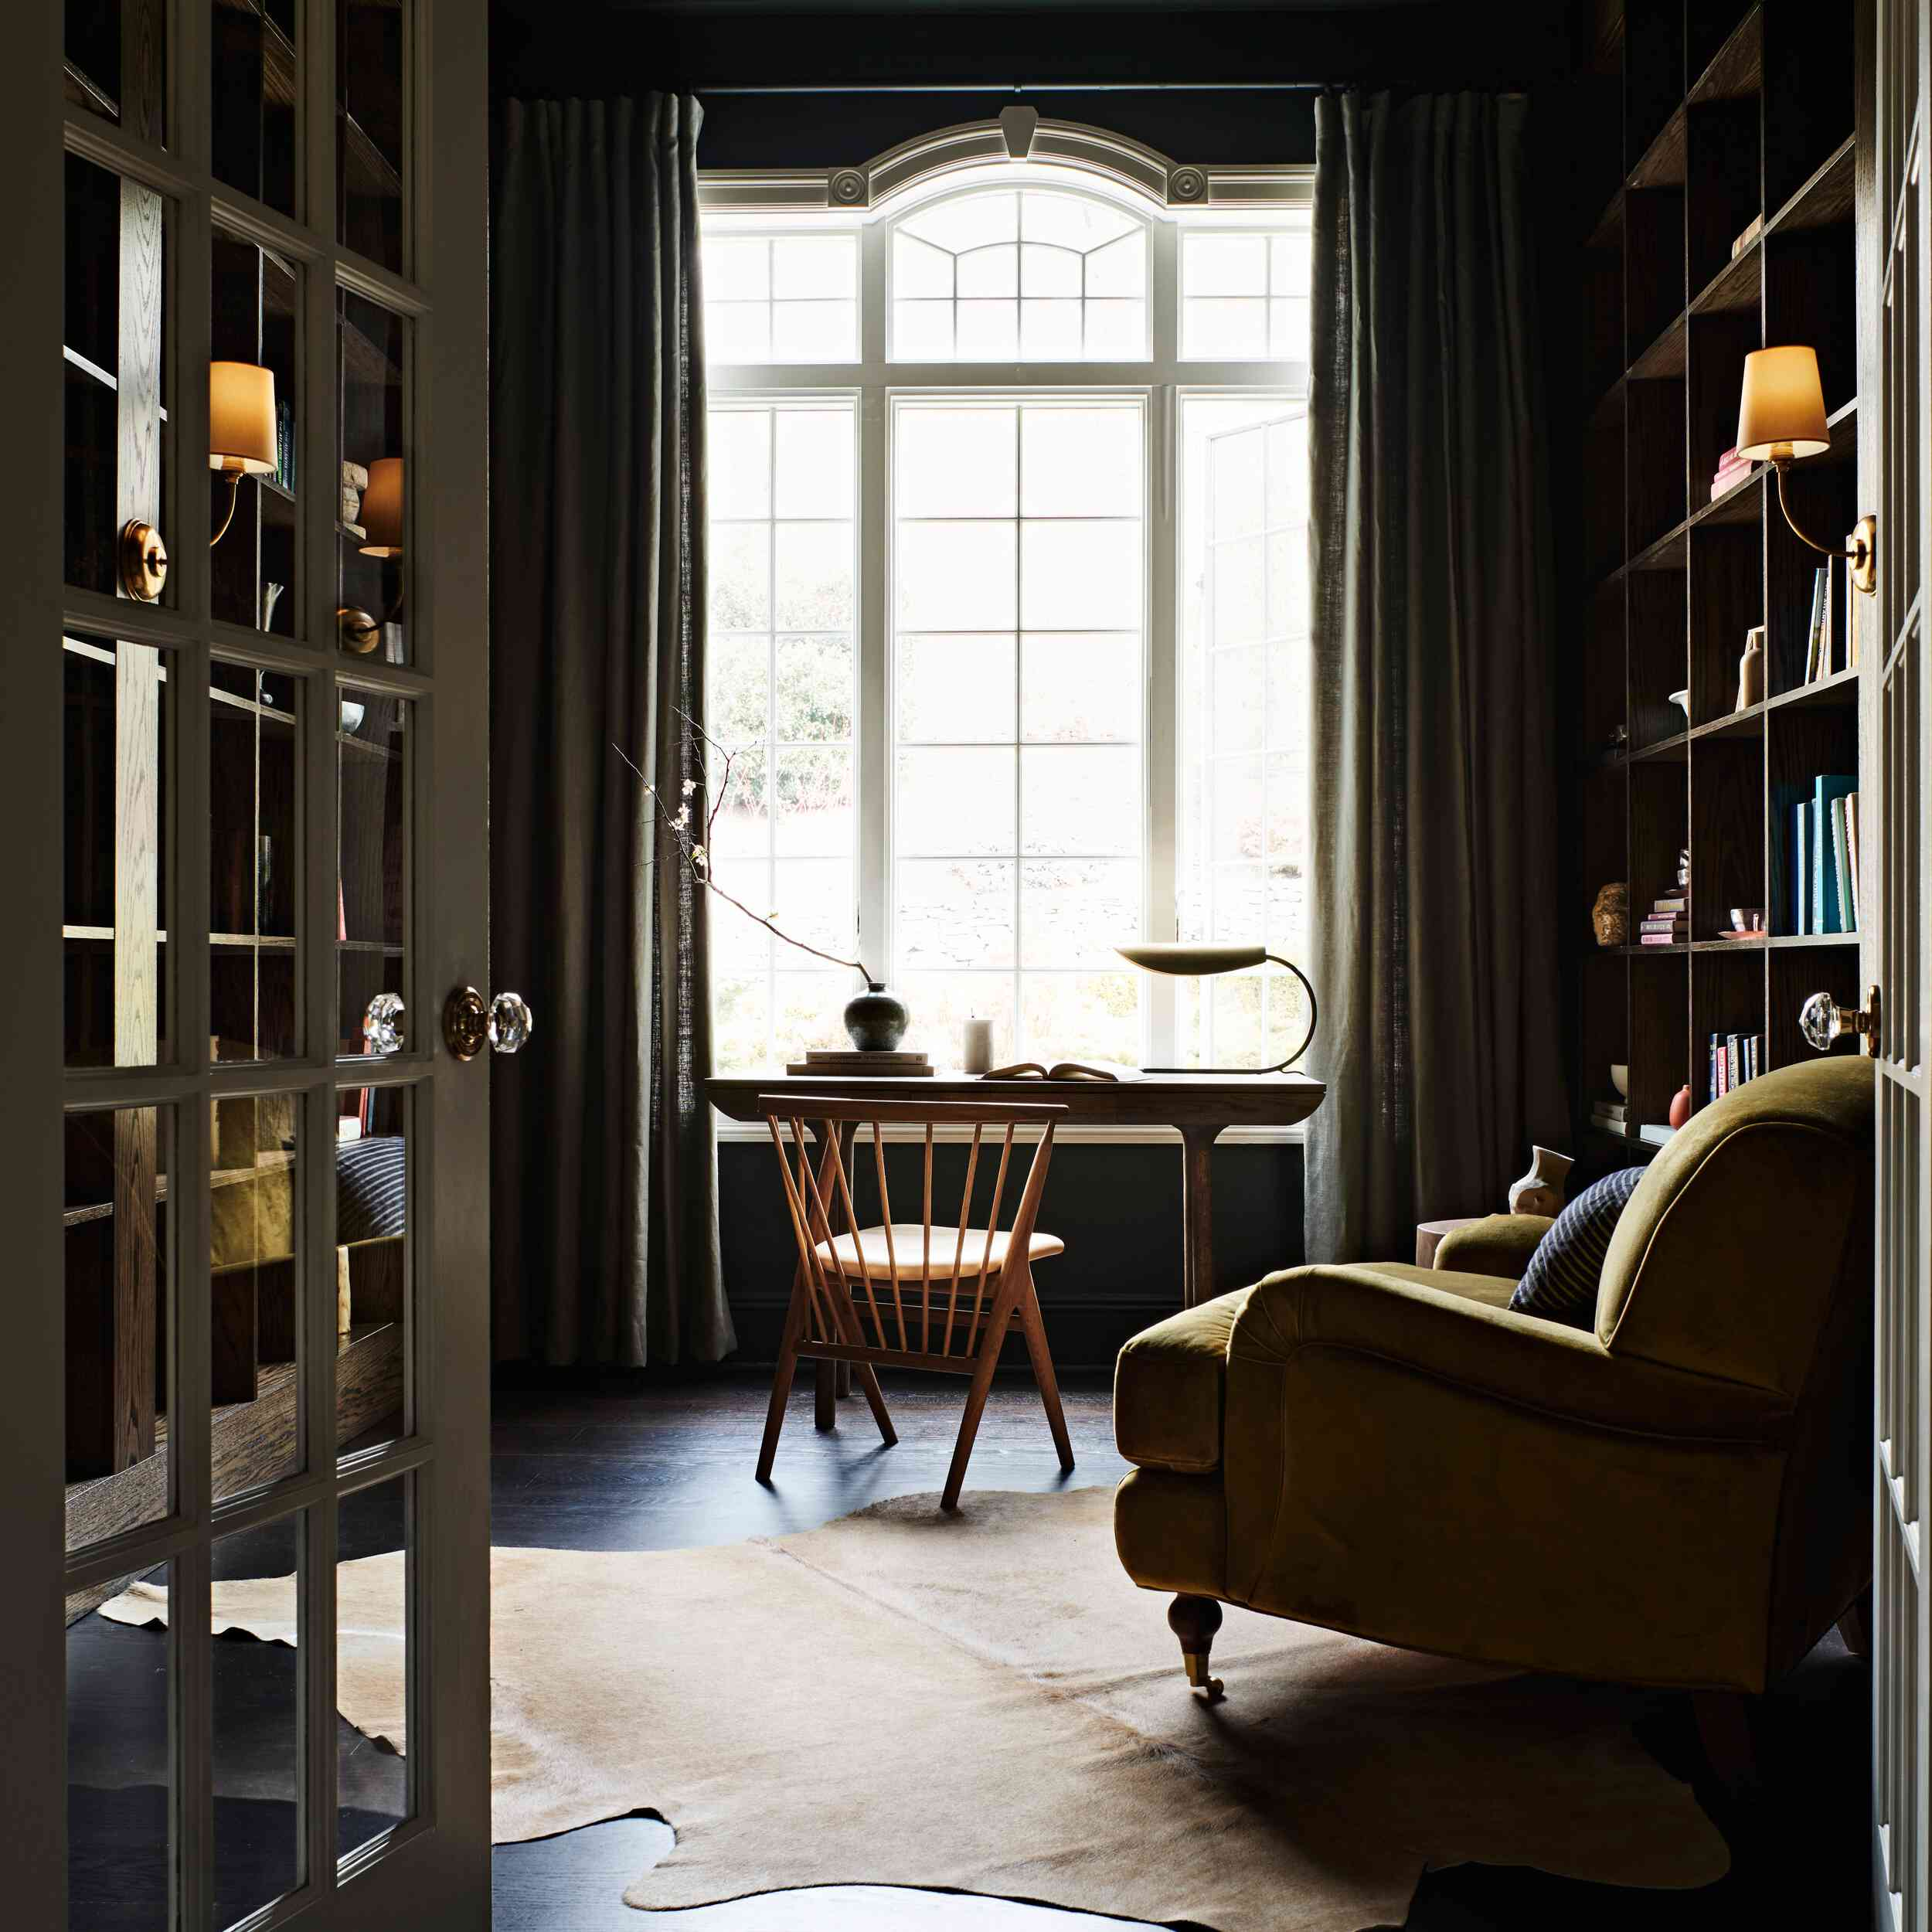 Small study with floor-to-ceiling bookshelves